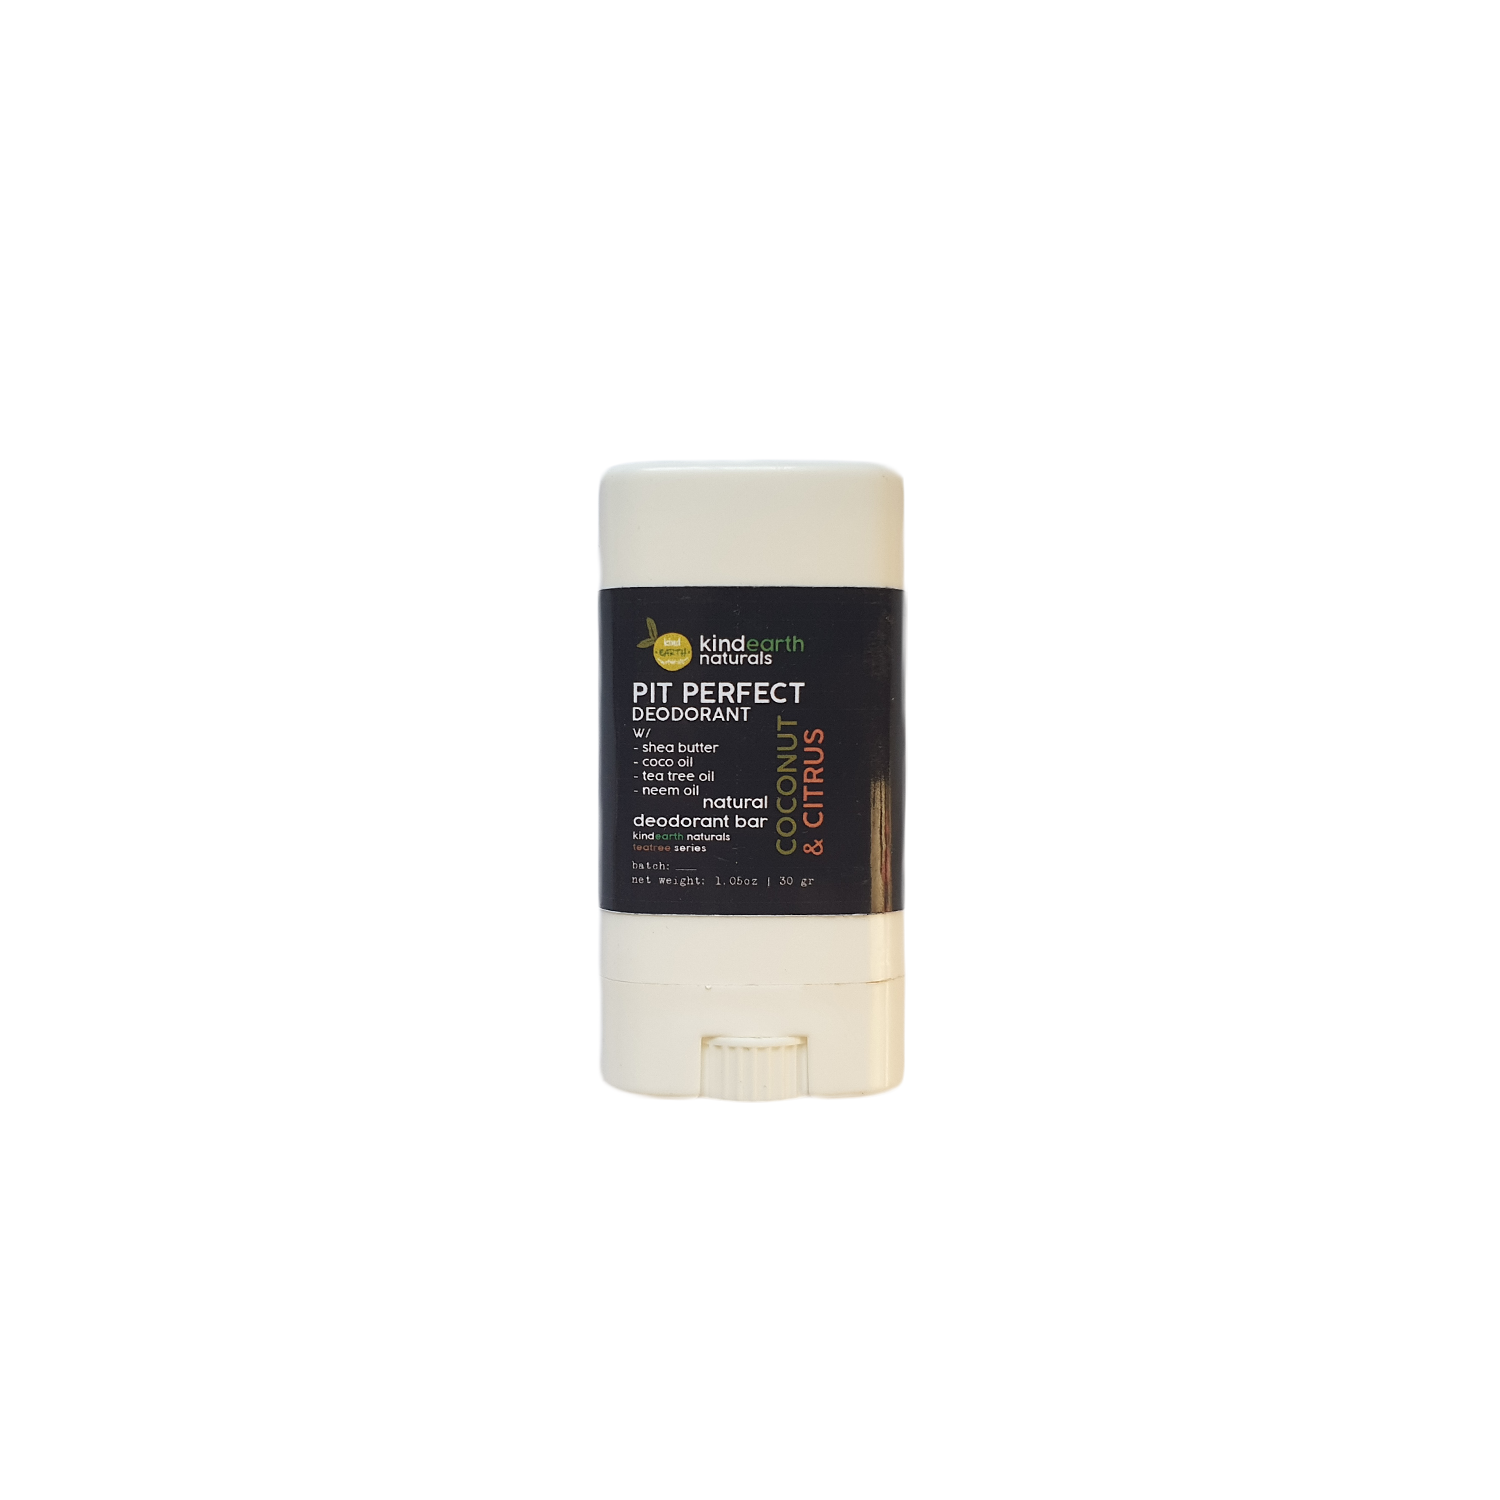 Pit Perfect Deodorant by KindEarth Naturals - Kind Earth Ph Naturals